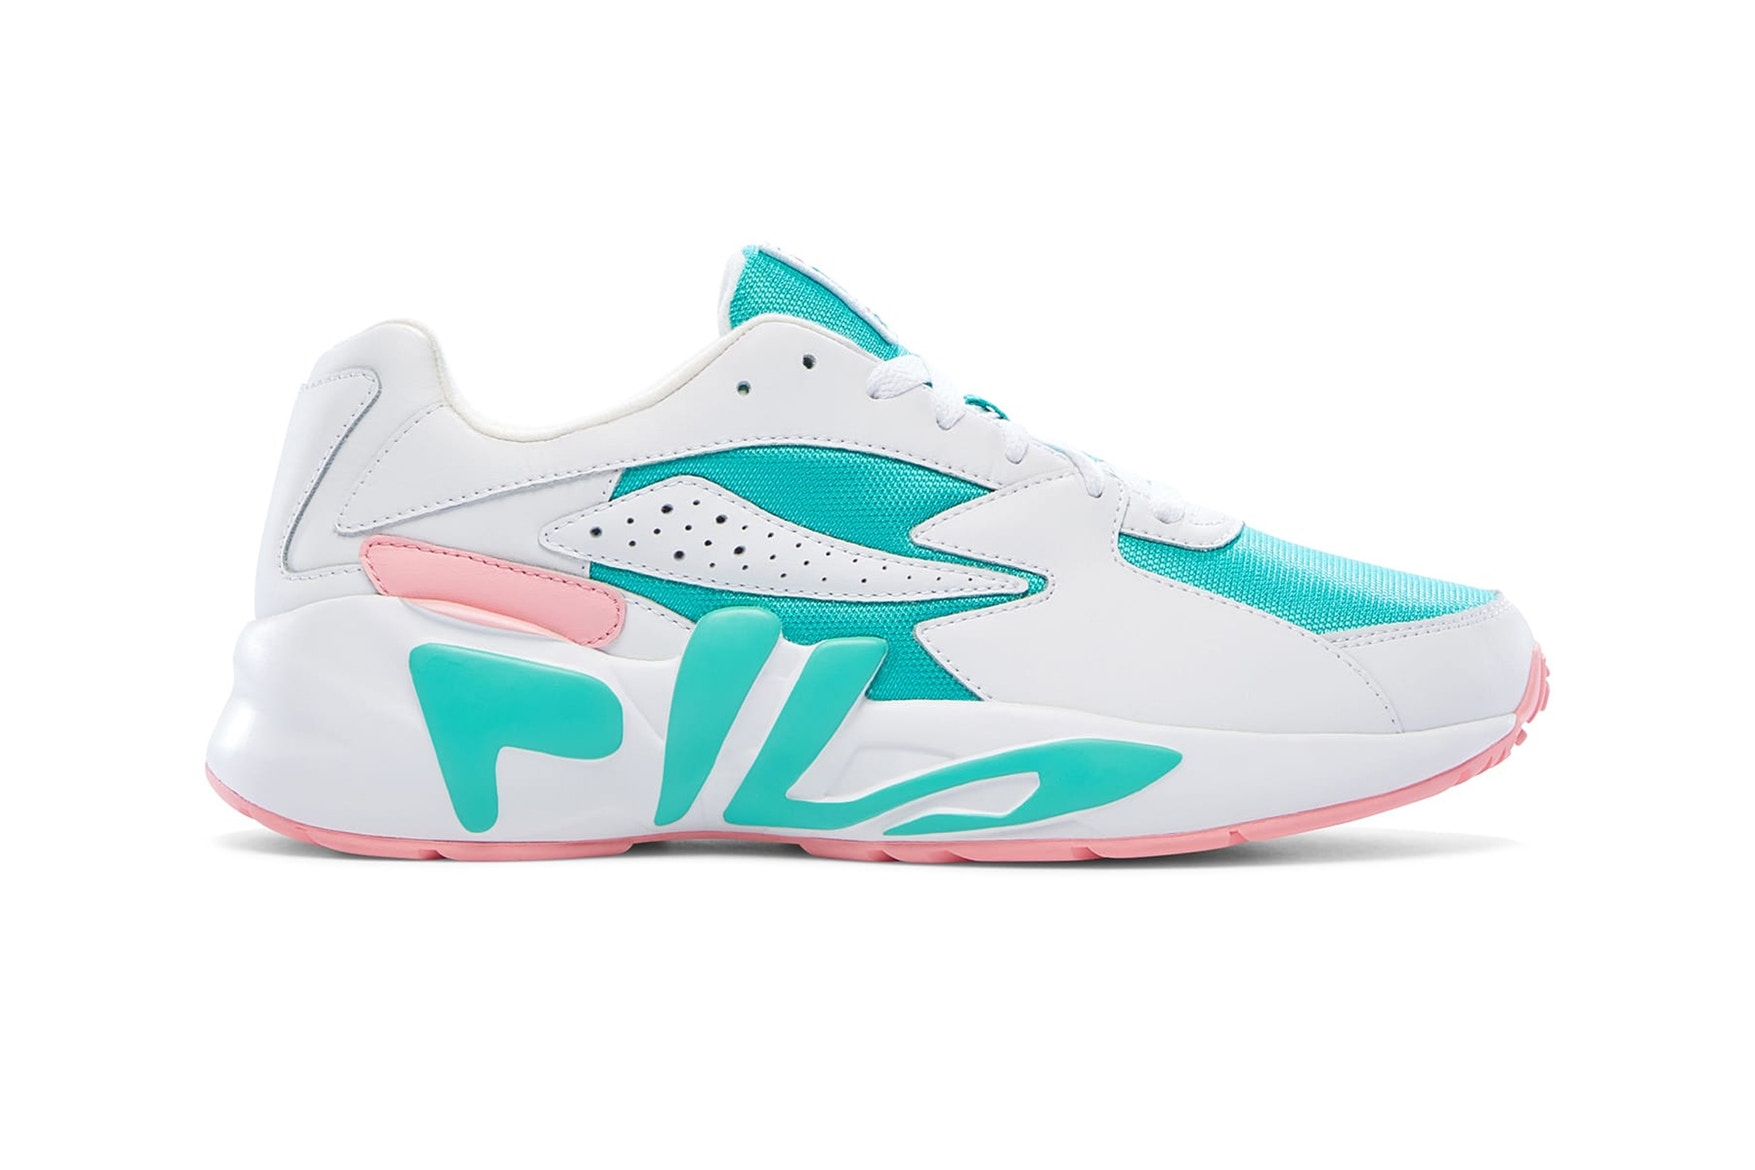 fila-revives-the-classic-mindblower-with-over-40-limited-edition-collaborations-26